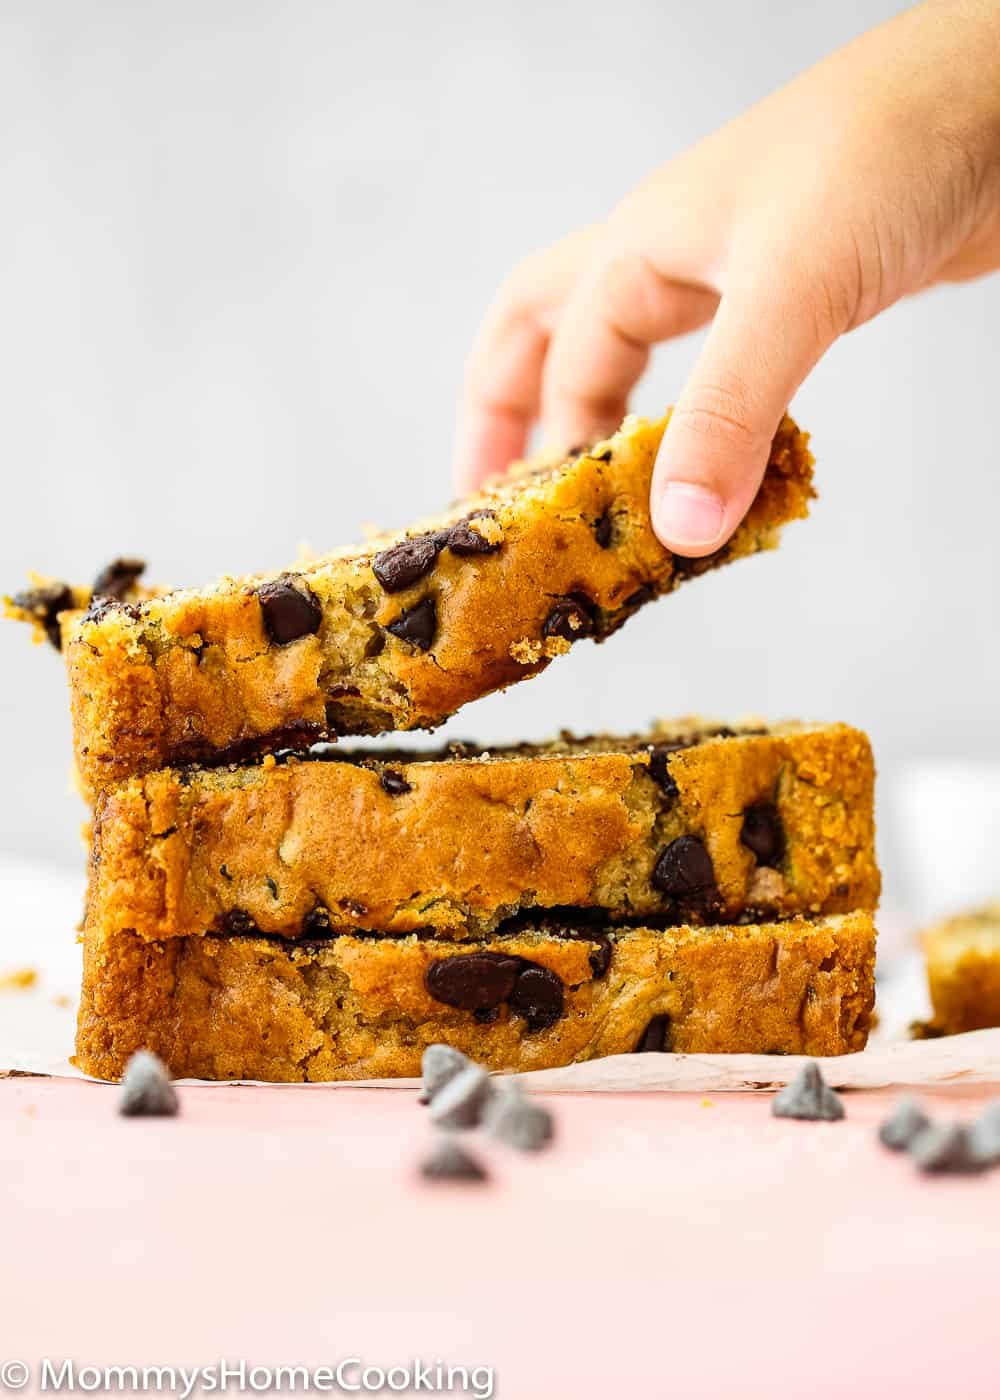 Easy to make eggless zucchini bread with chocolate chips